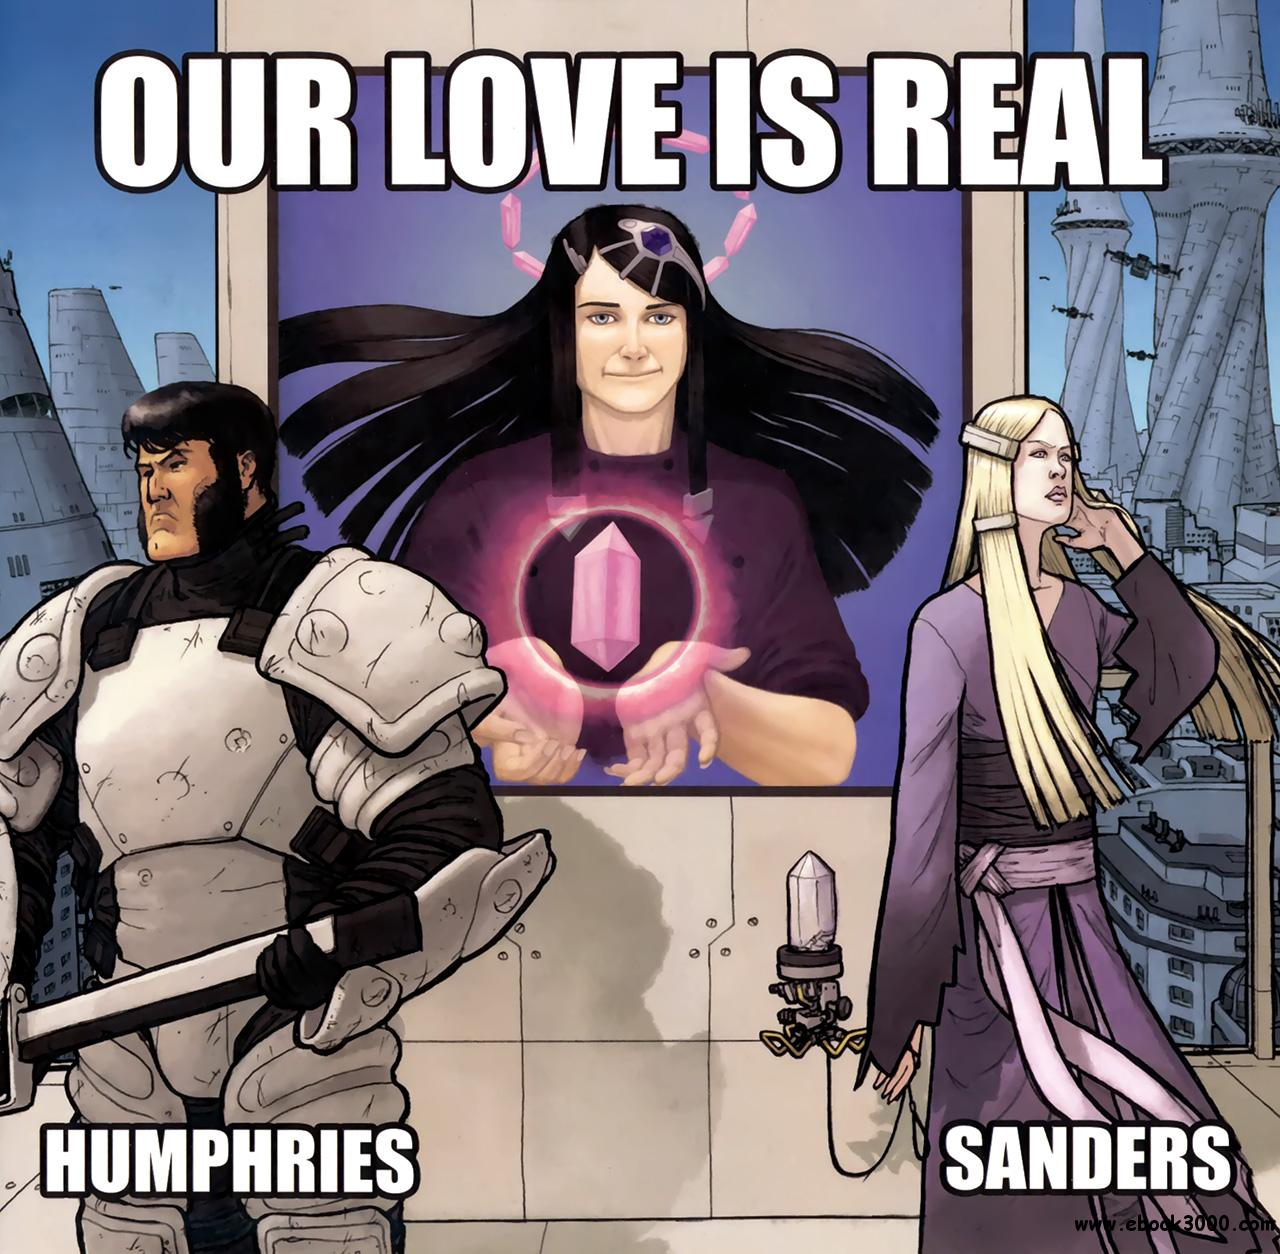 Our Love Is Real (2011) free download